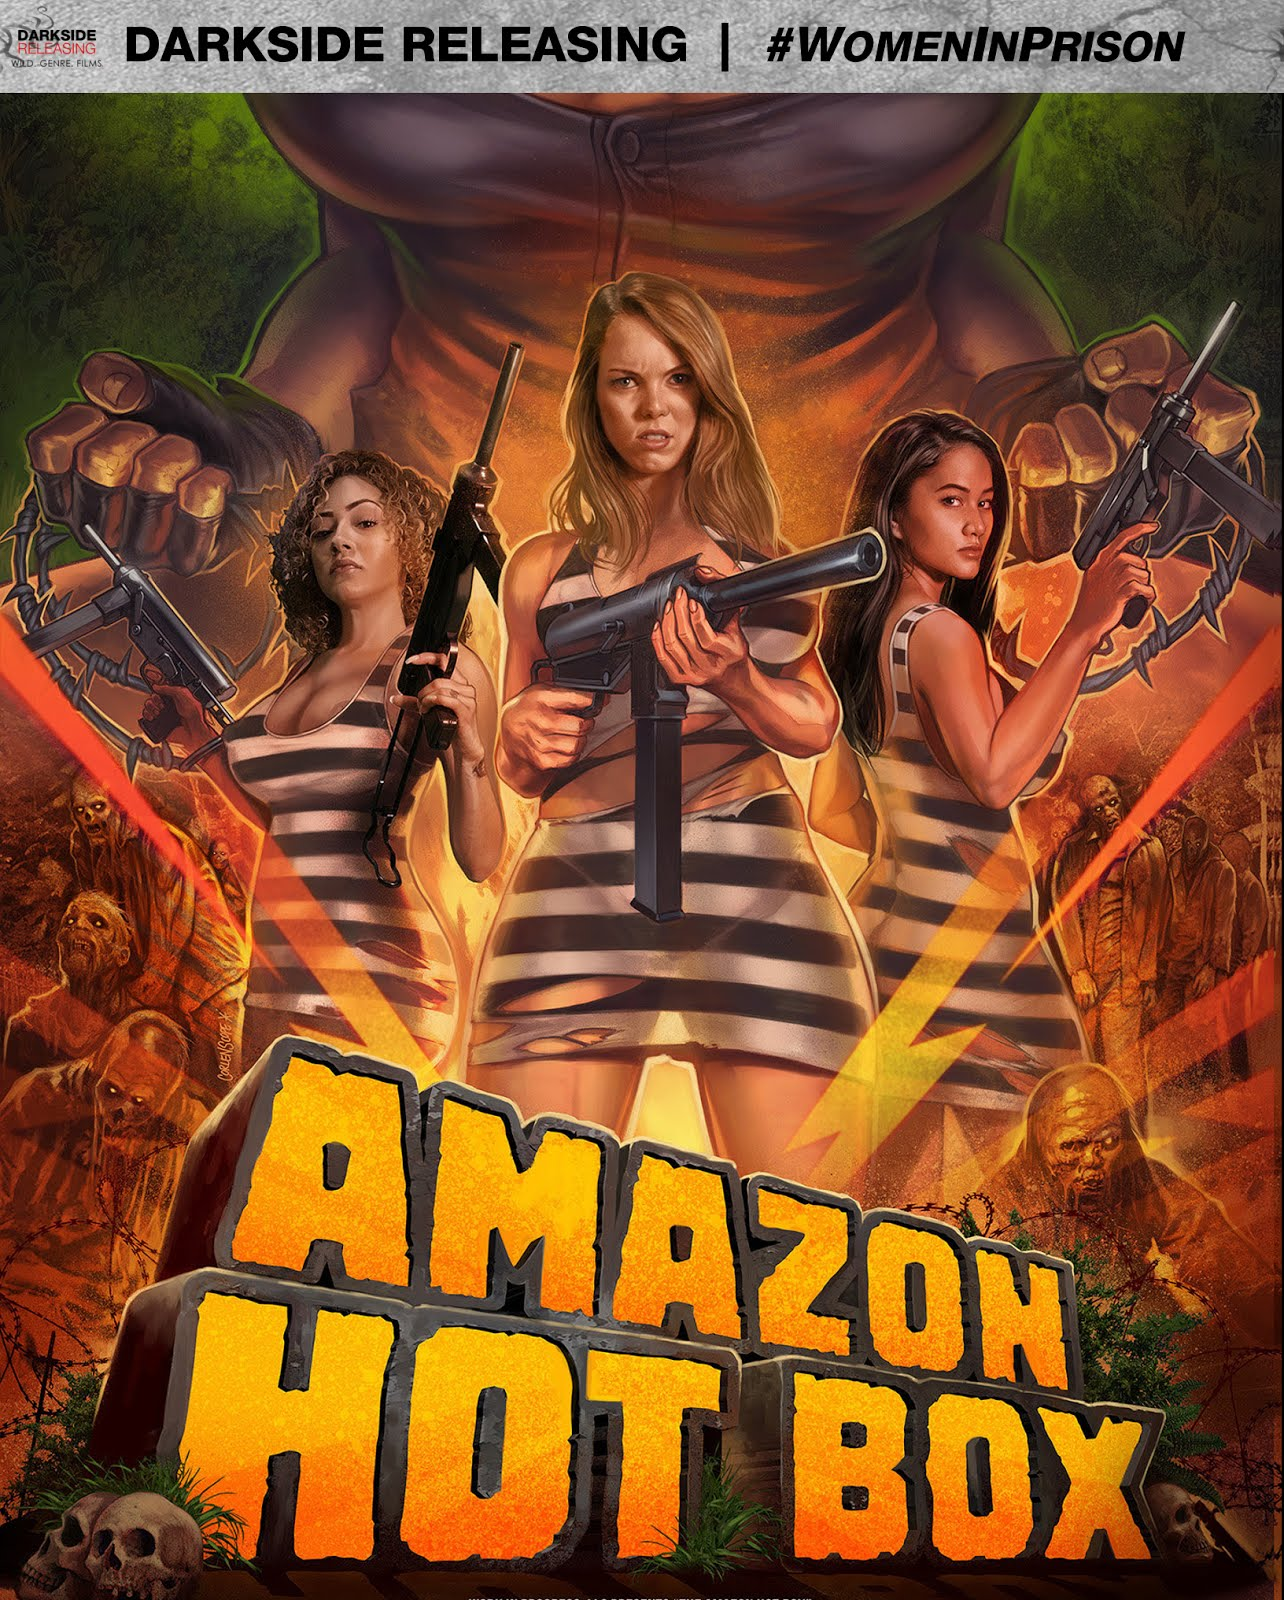 AMAZON HOT BOX - out now on Blu-ray!